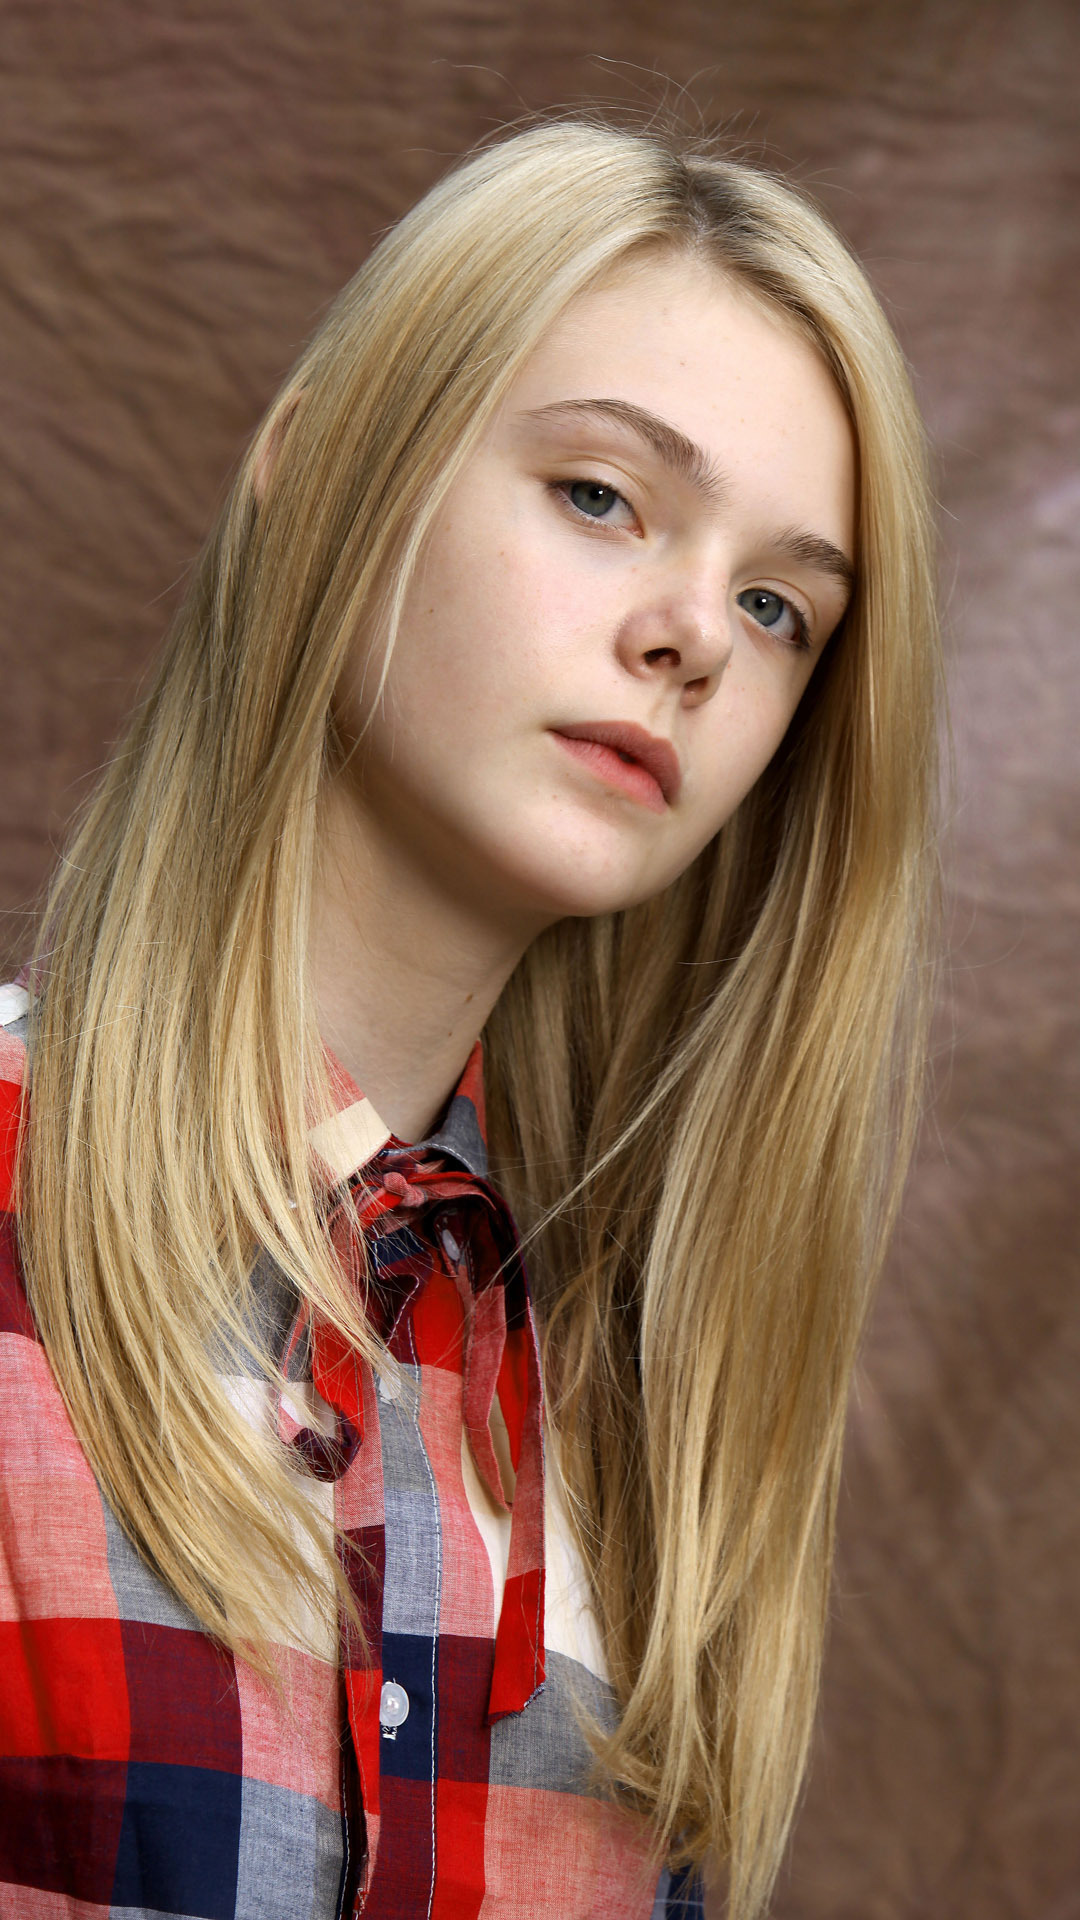 Elle Fanning As A Child HD Wallpaper Background Images 1080x1920